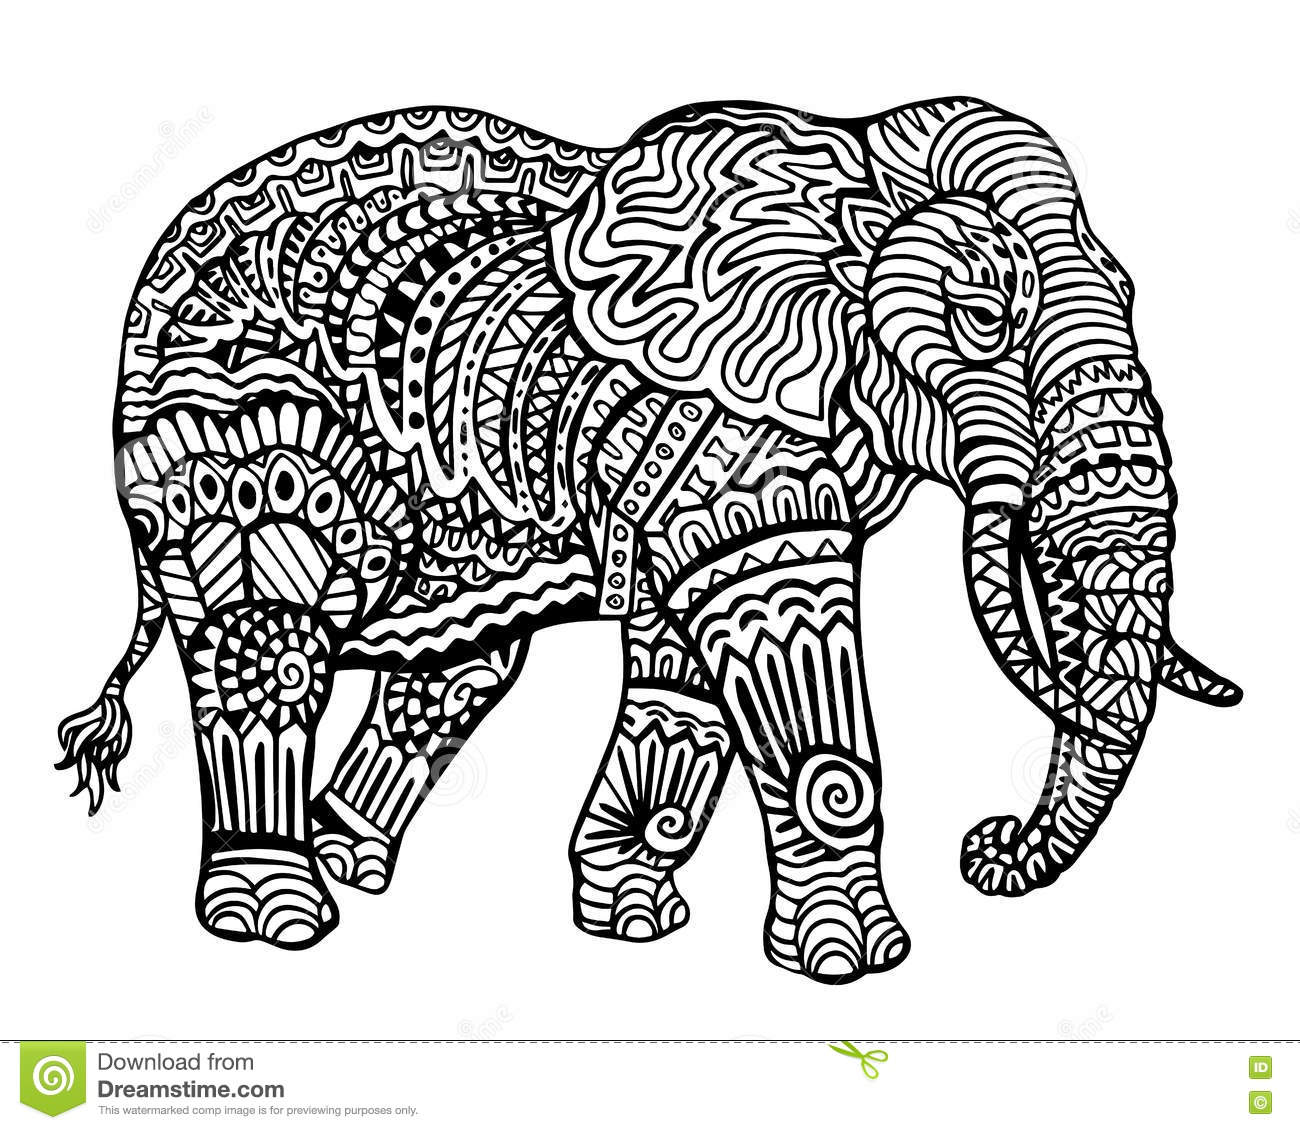 Ethnic Animal Doodle Detail Pattern - Elephant Zentangle Illustratio ...